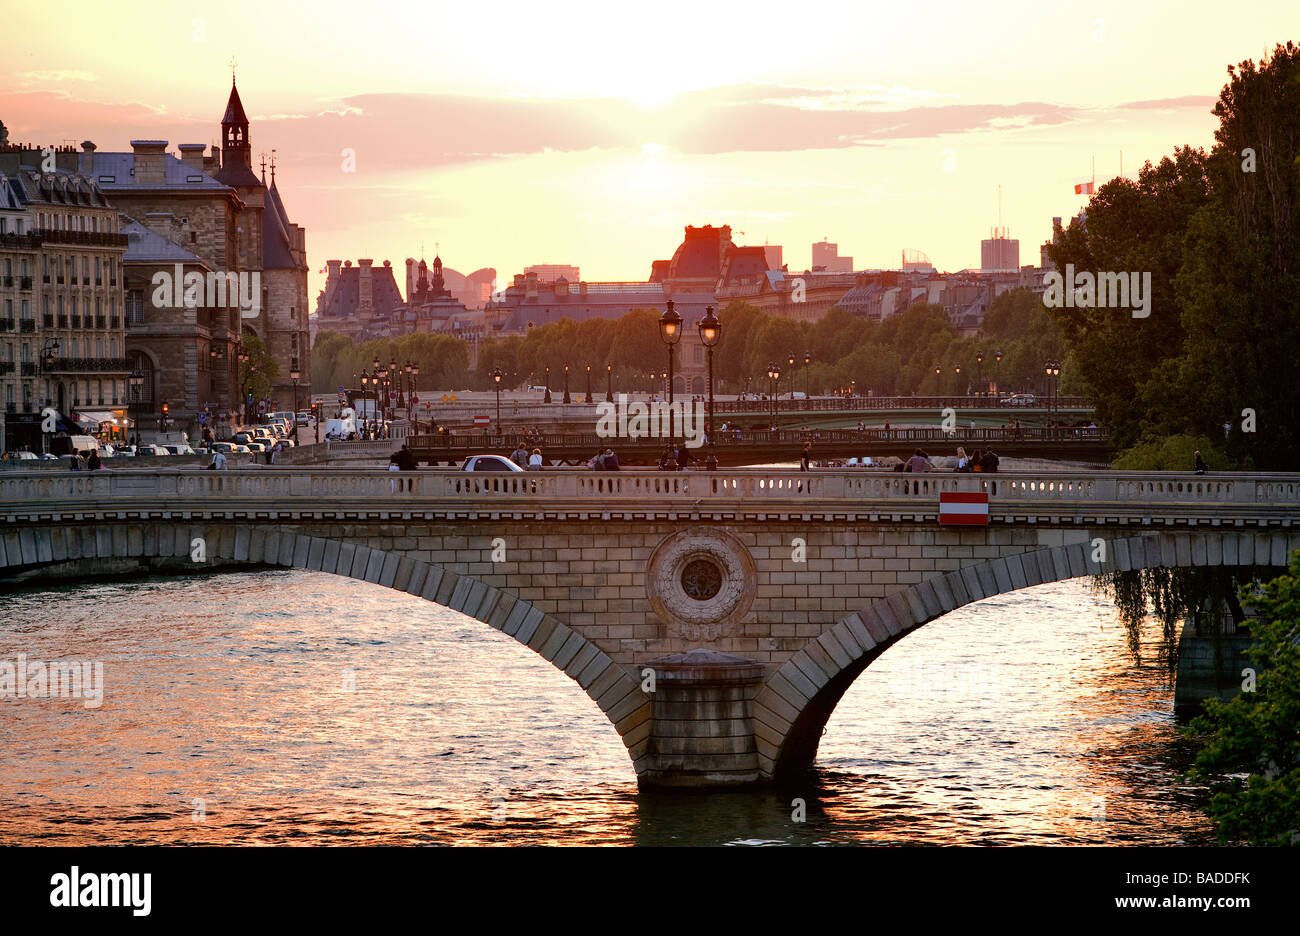 France, Paris, banks of the Seine River classified as World Heritage by UNESCO, Pont Louis Philippe over Seine River - Stock Image